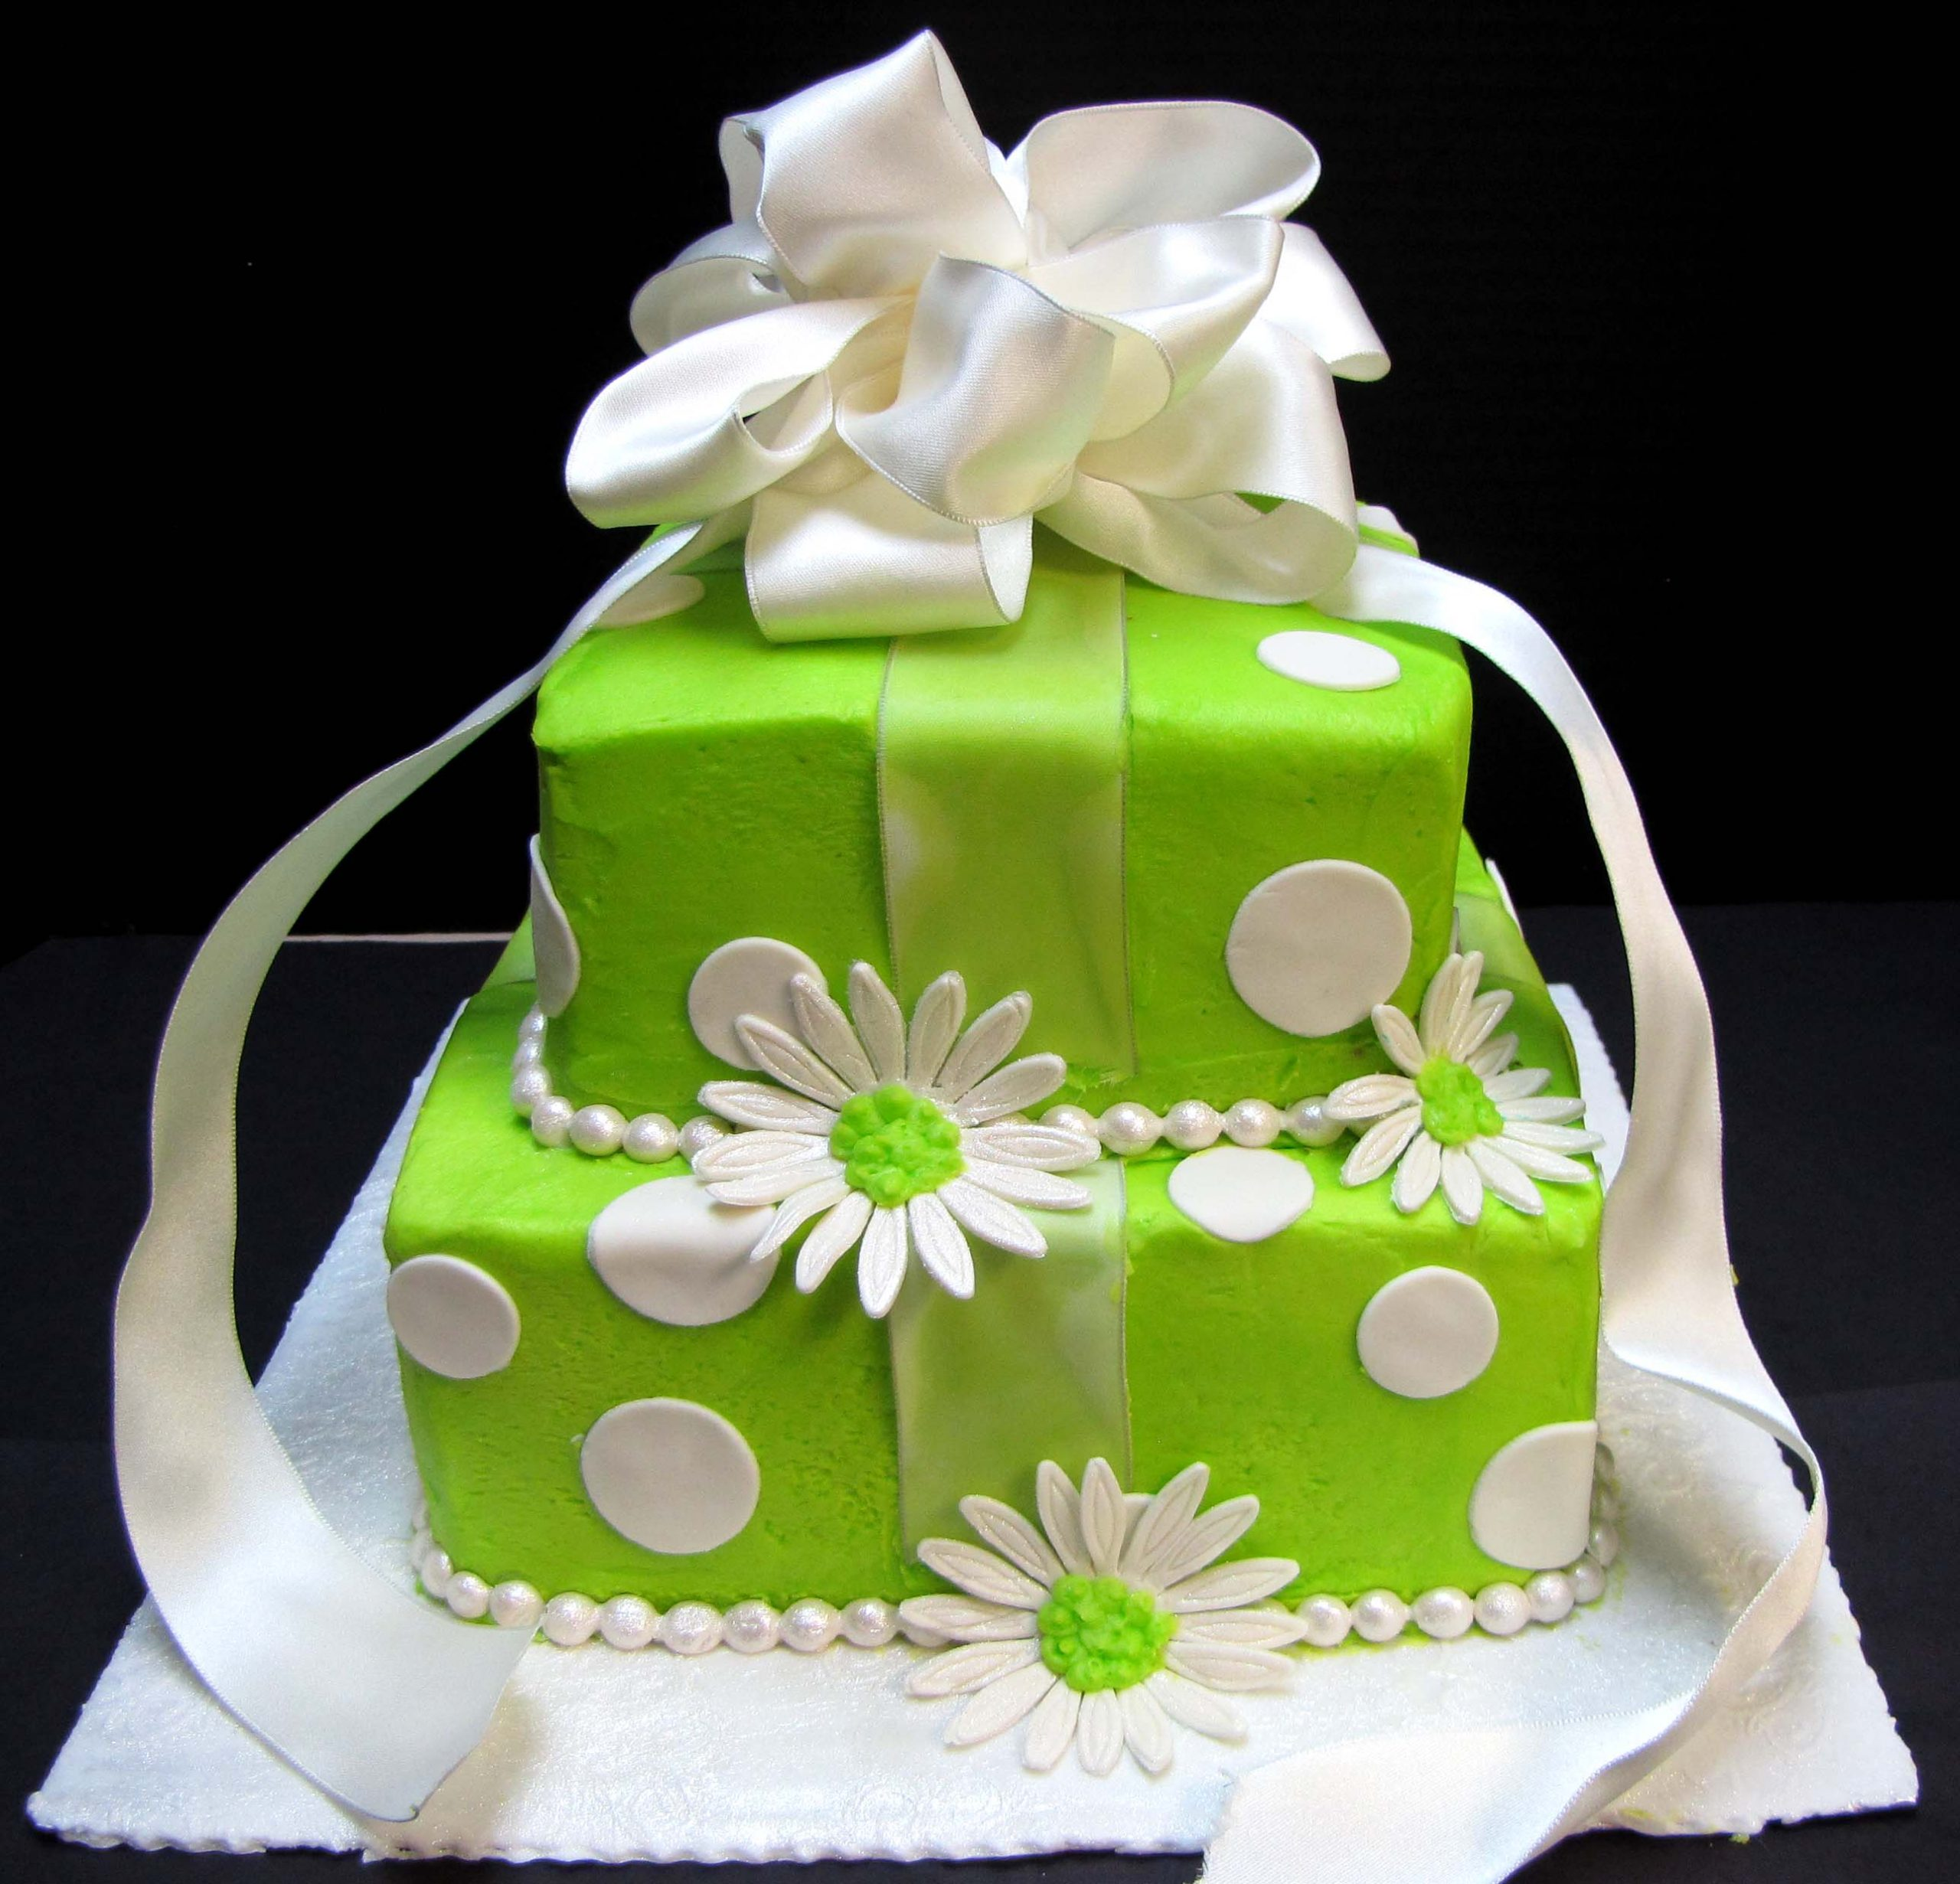 Great And Touching Birthday Wishes To Wish Your Friend A Happy Birthday Happy Birthday Wishes Quotes Poems Toasts